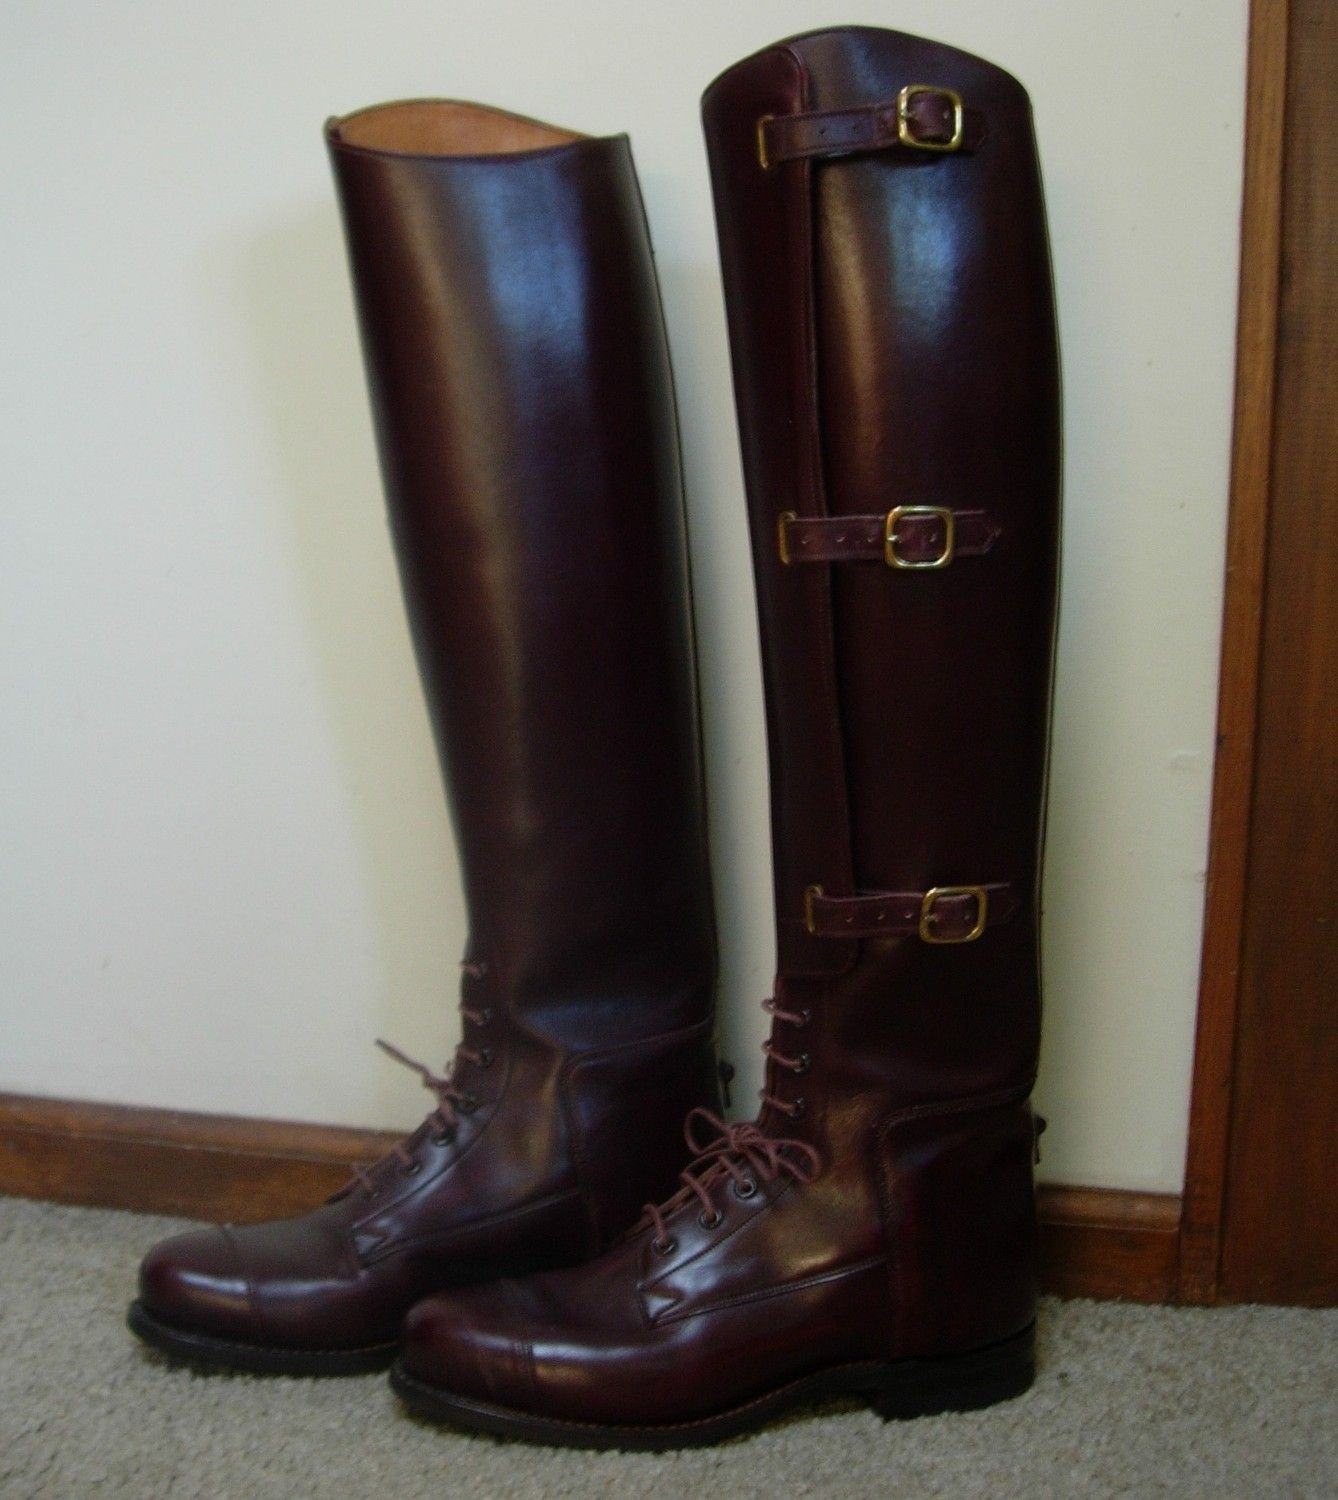 dehner custom riding boots | My Style | Pinterest | Boots, Search ...